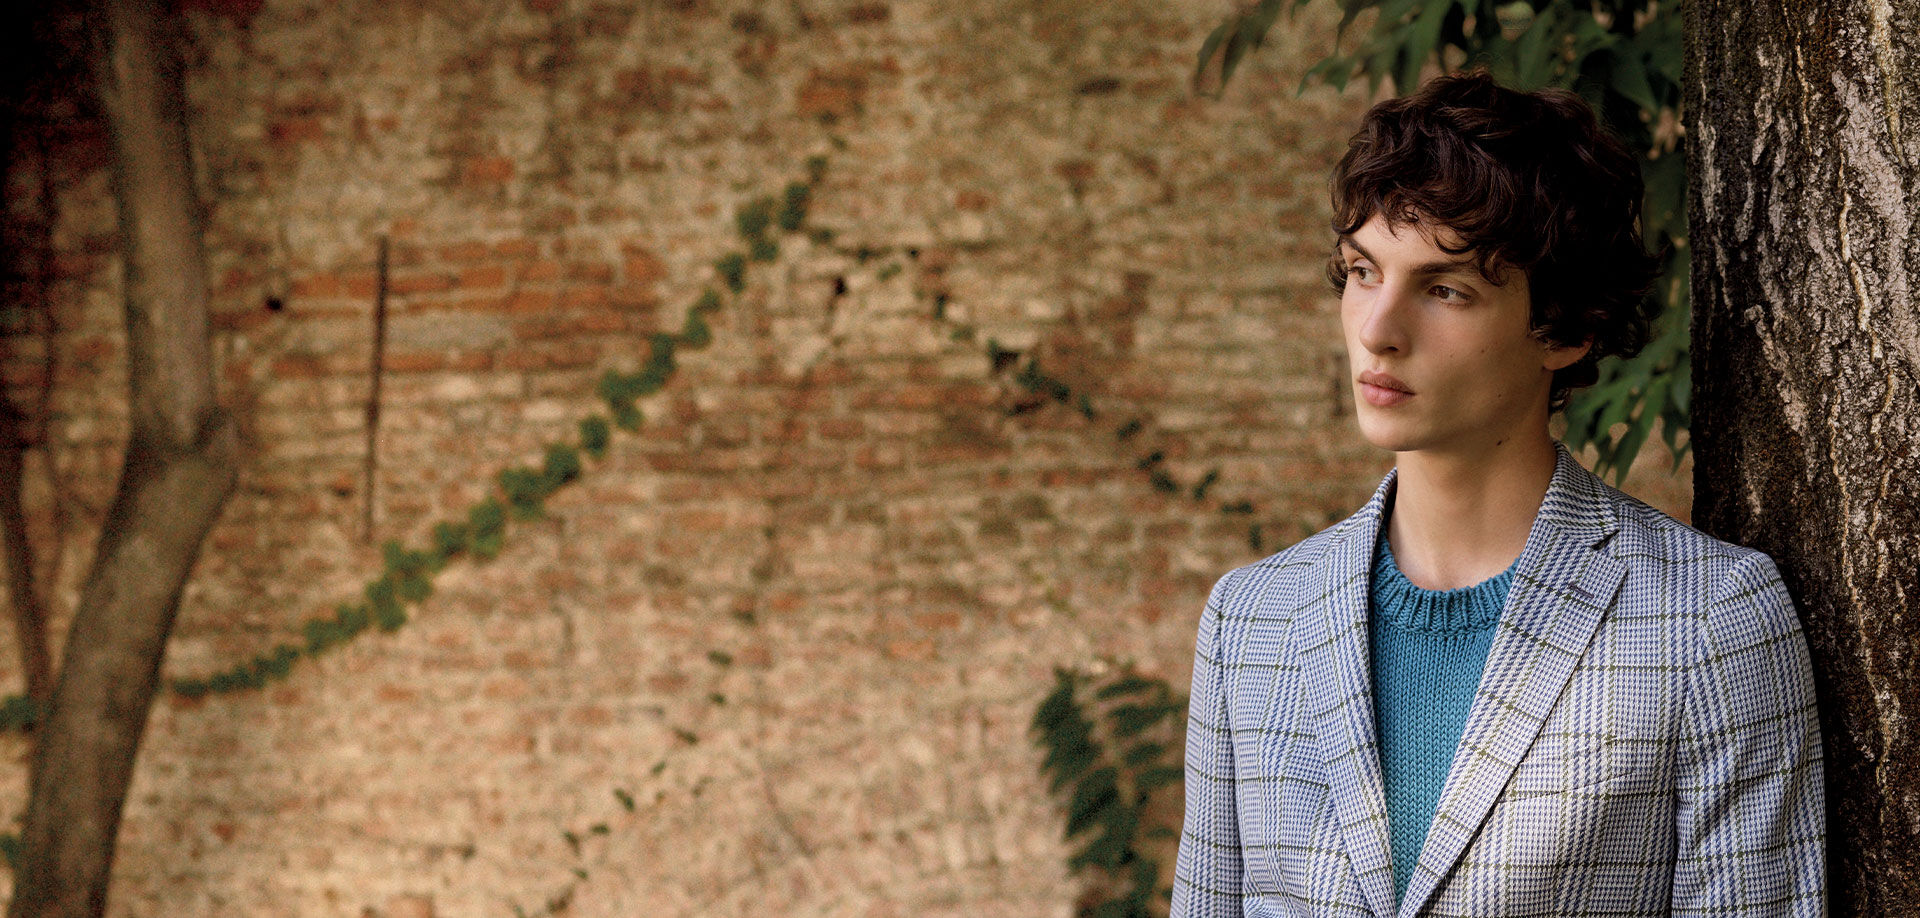 ETRO_MEN'S SPRING-SUMMER 2021 COLLECTION